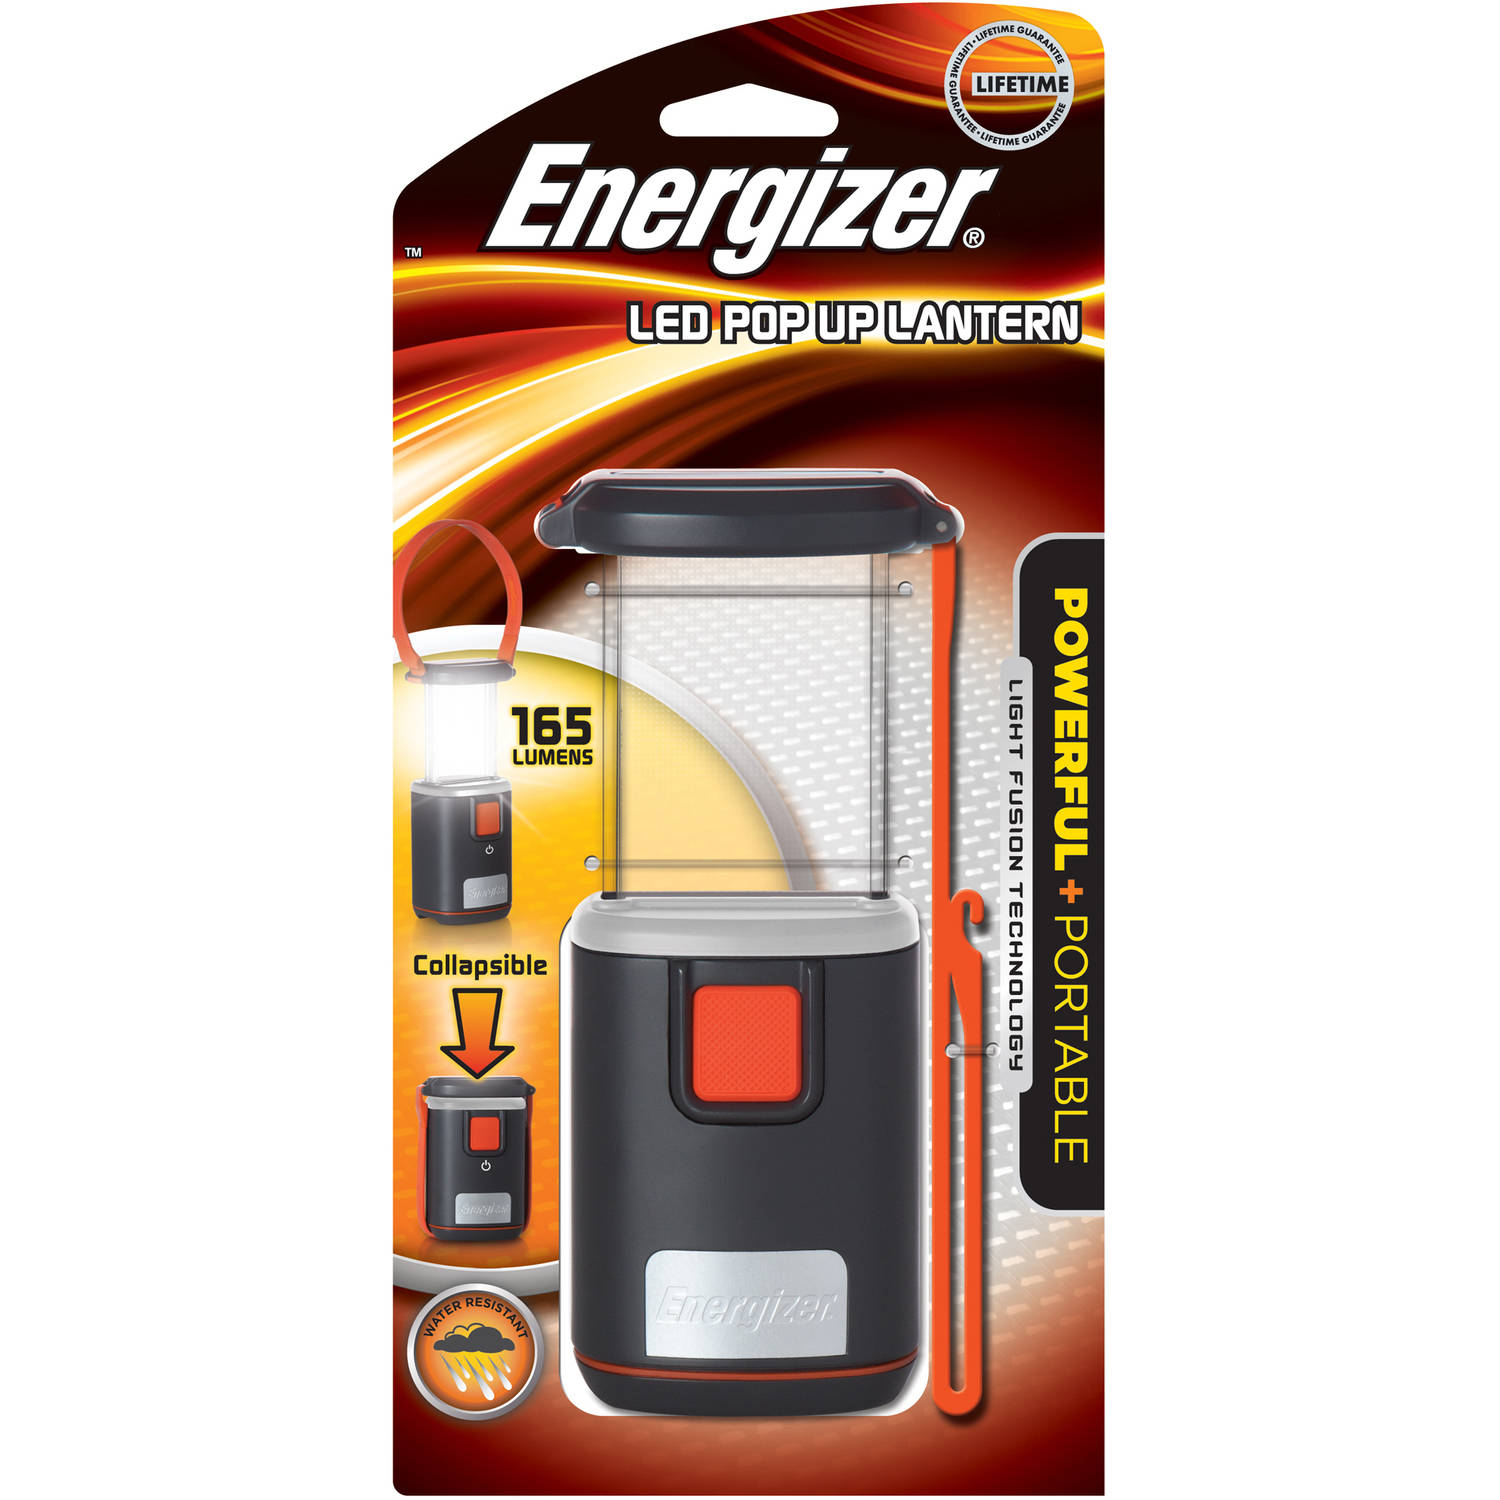 Energizer Fusion Pop-Up Lantern, 180 Lumens